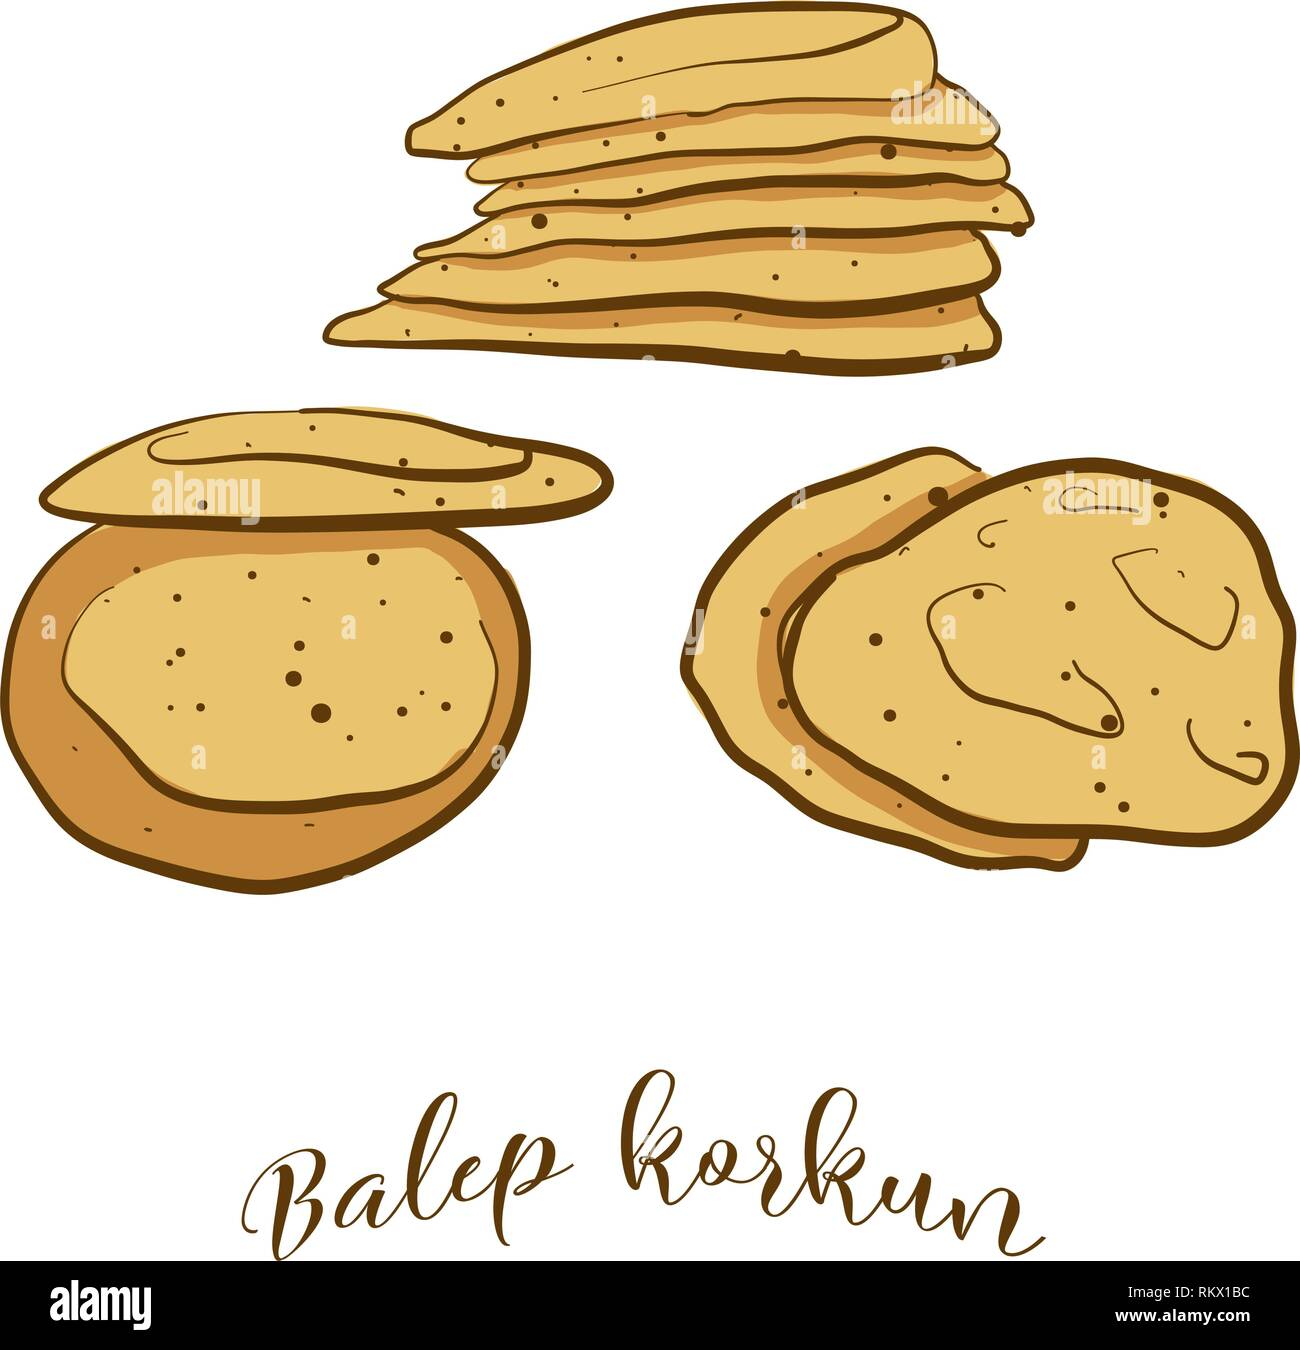 Colored sketches of Balep korkun bread. Vector drawing of Flatbread food, usually known in Tibet. Colored Bread illustration series. - Stock Vector